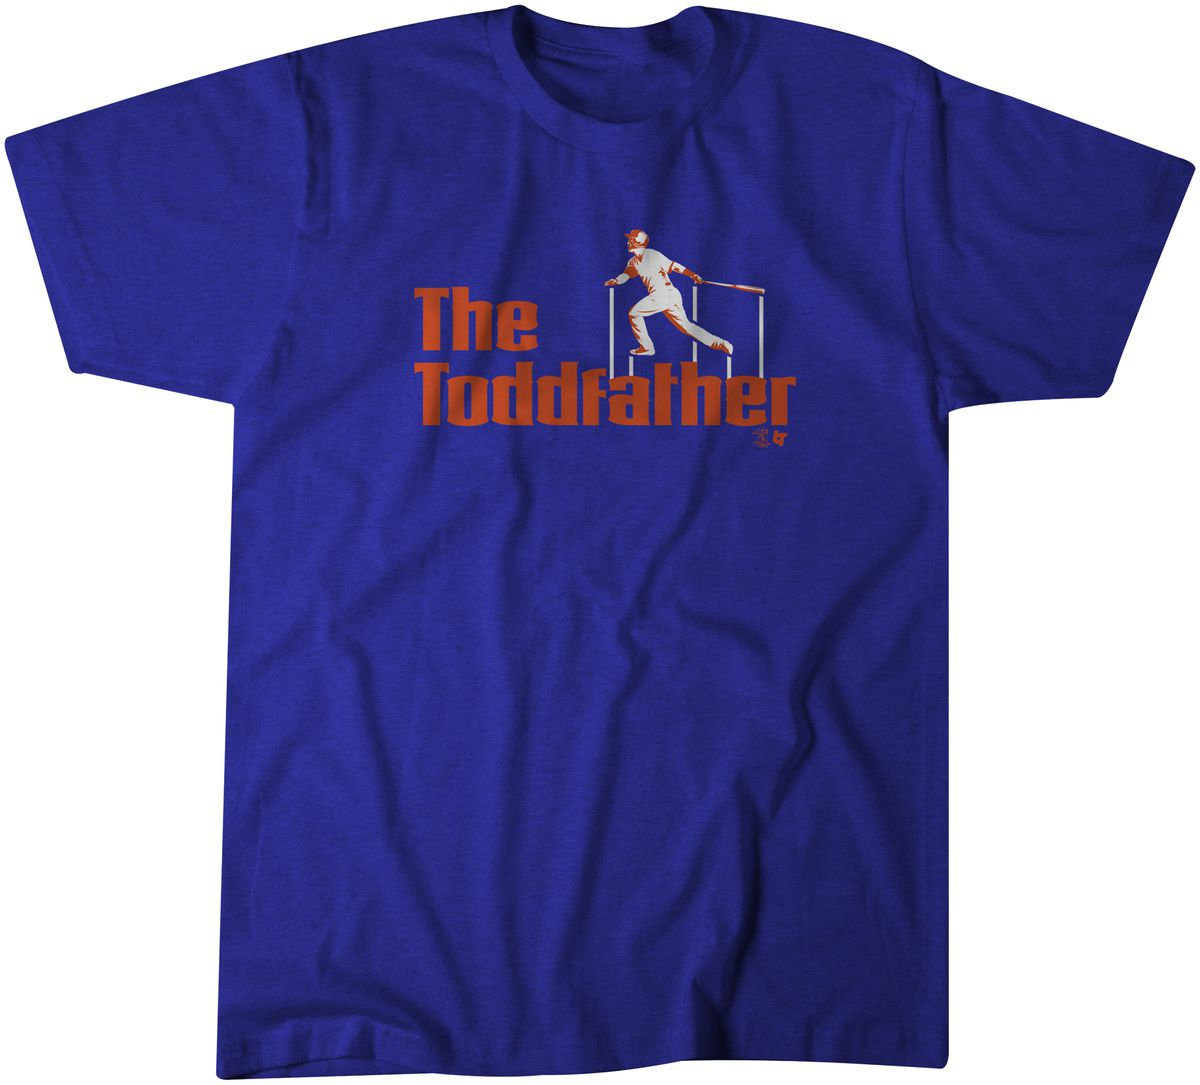 wholesale dealer 302c5 212fc Celebrate the Todd Frazier signing with a Toddfather t-shirt ...